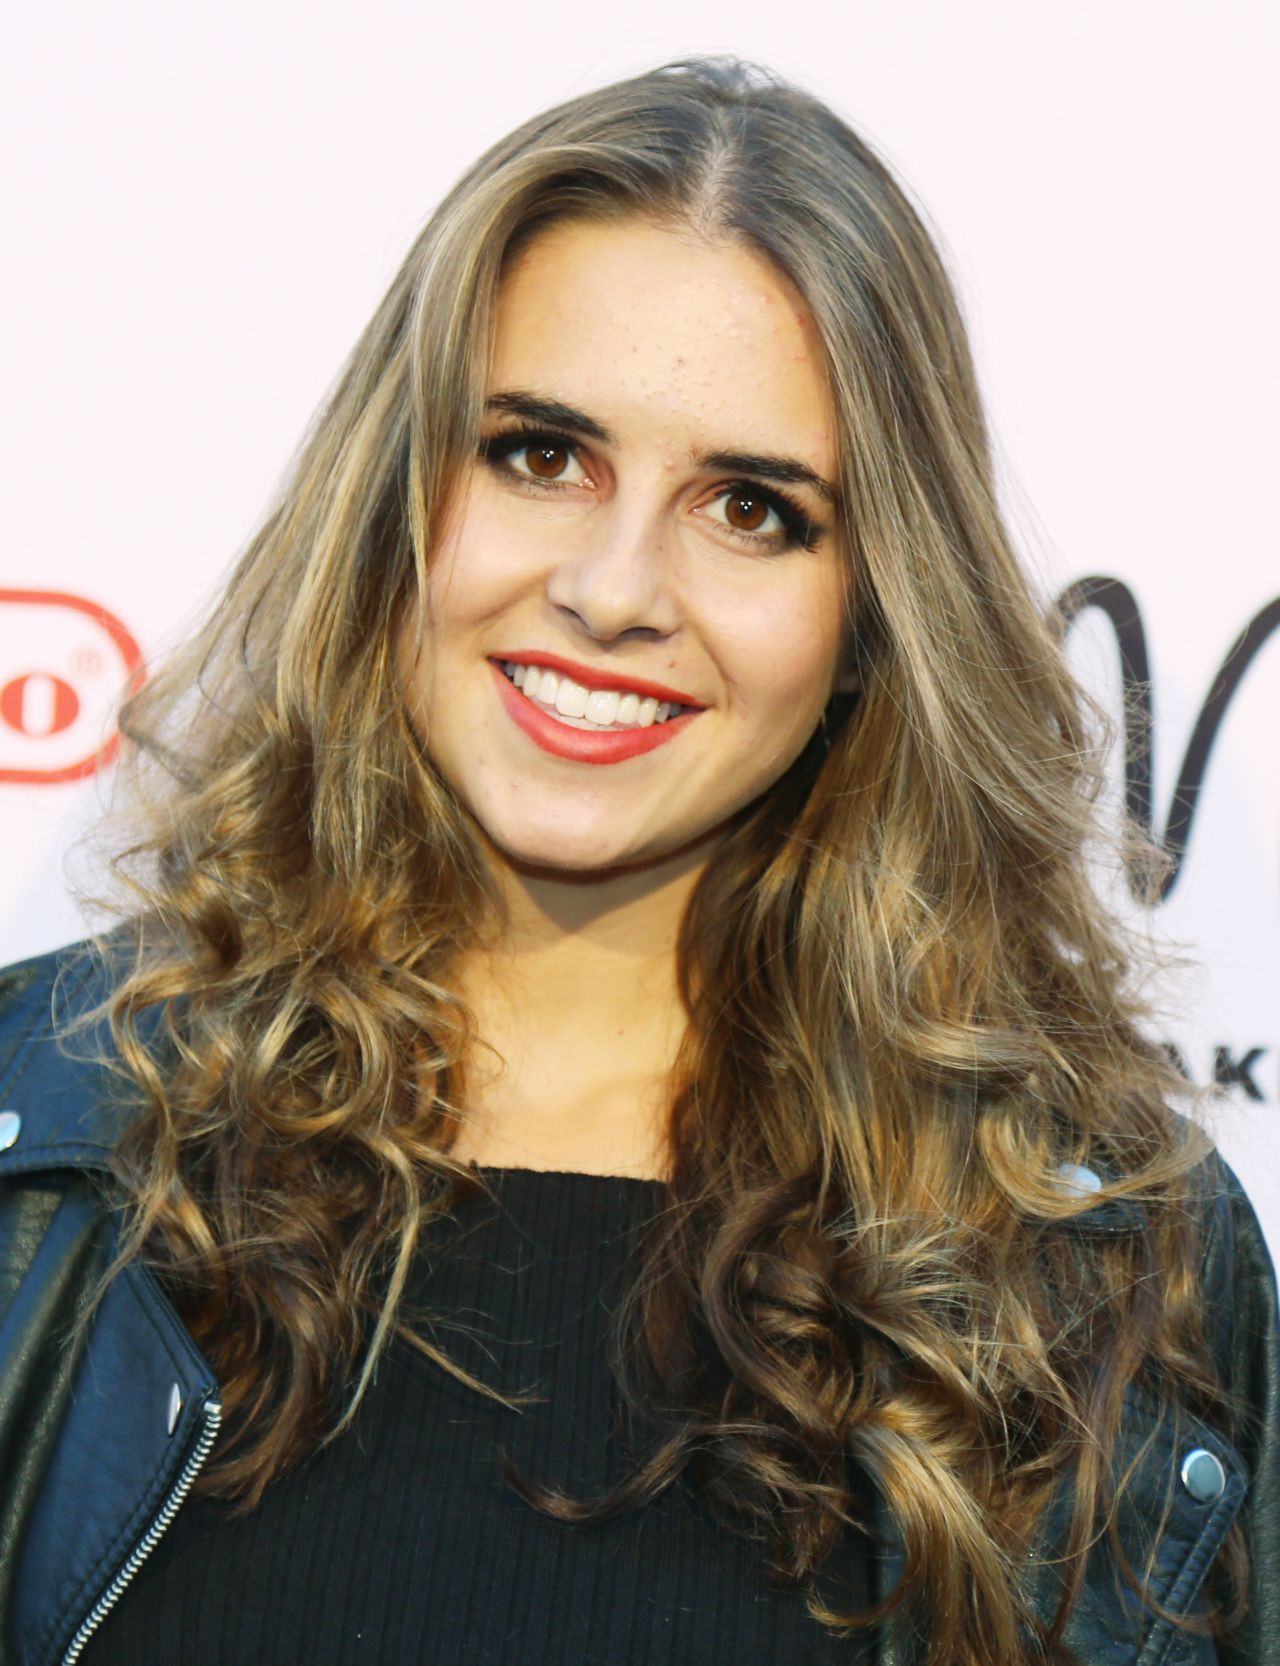 Watch Carly Rose Sonenclar video